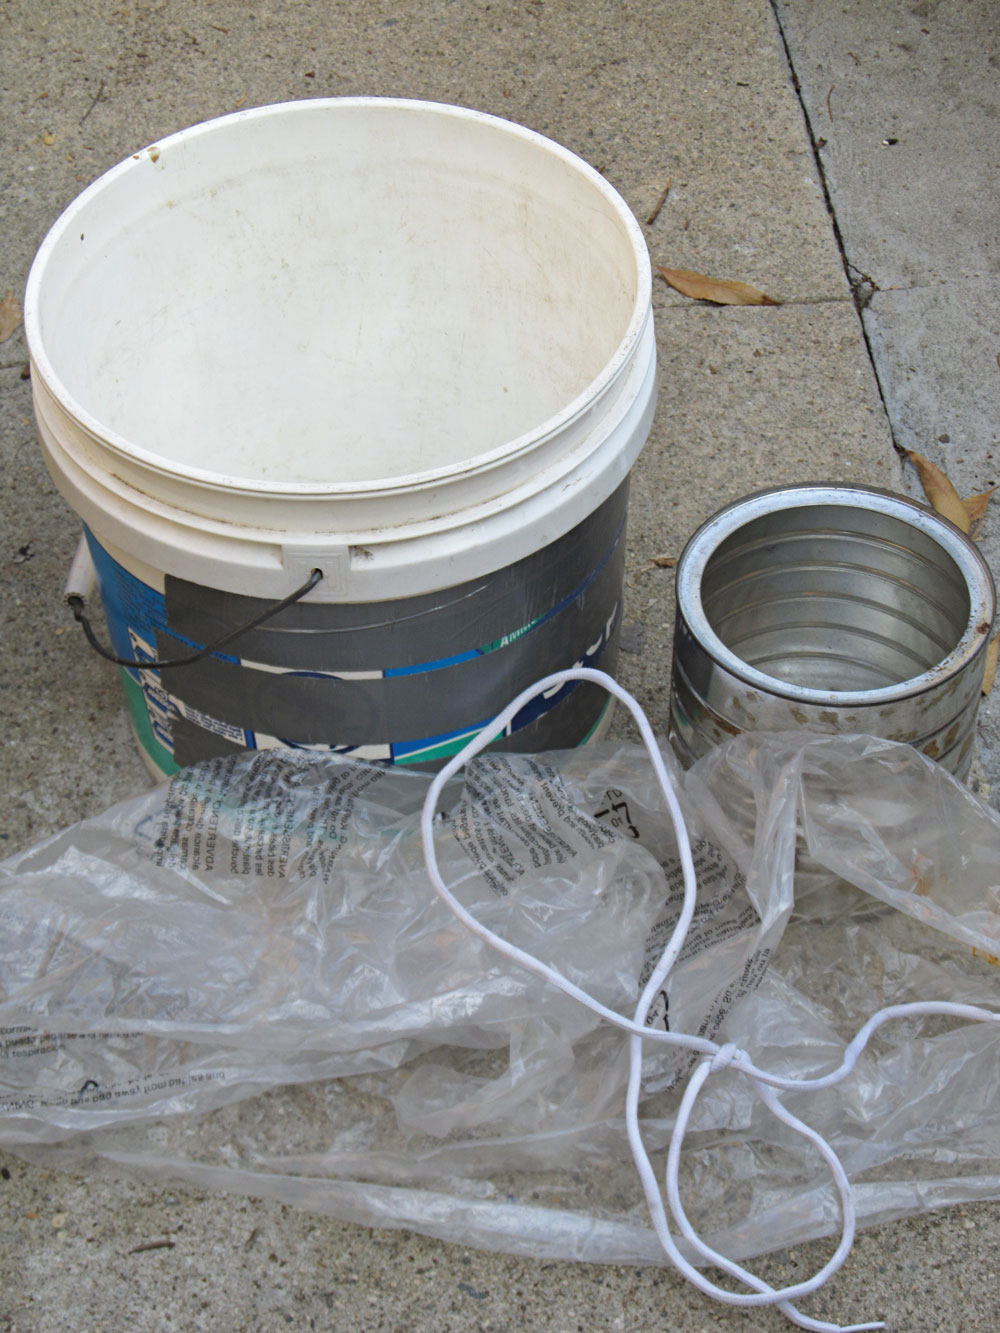 A still can be made in the backyard with these parts: a can, bucket, sheet of plastic and some cord.